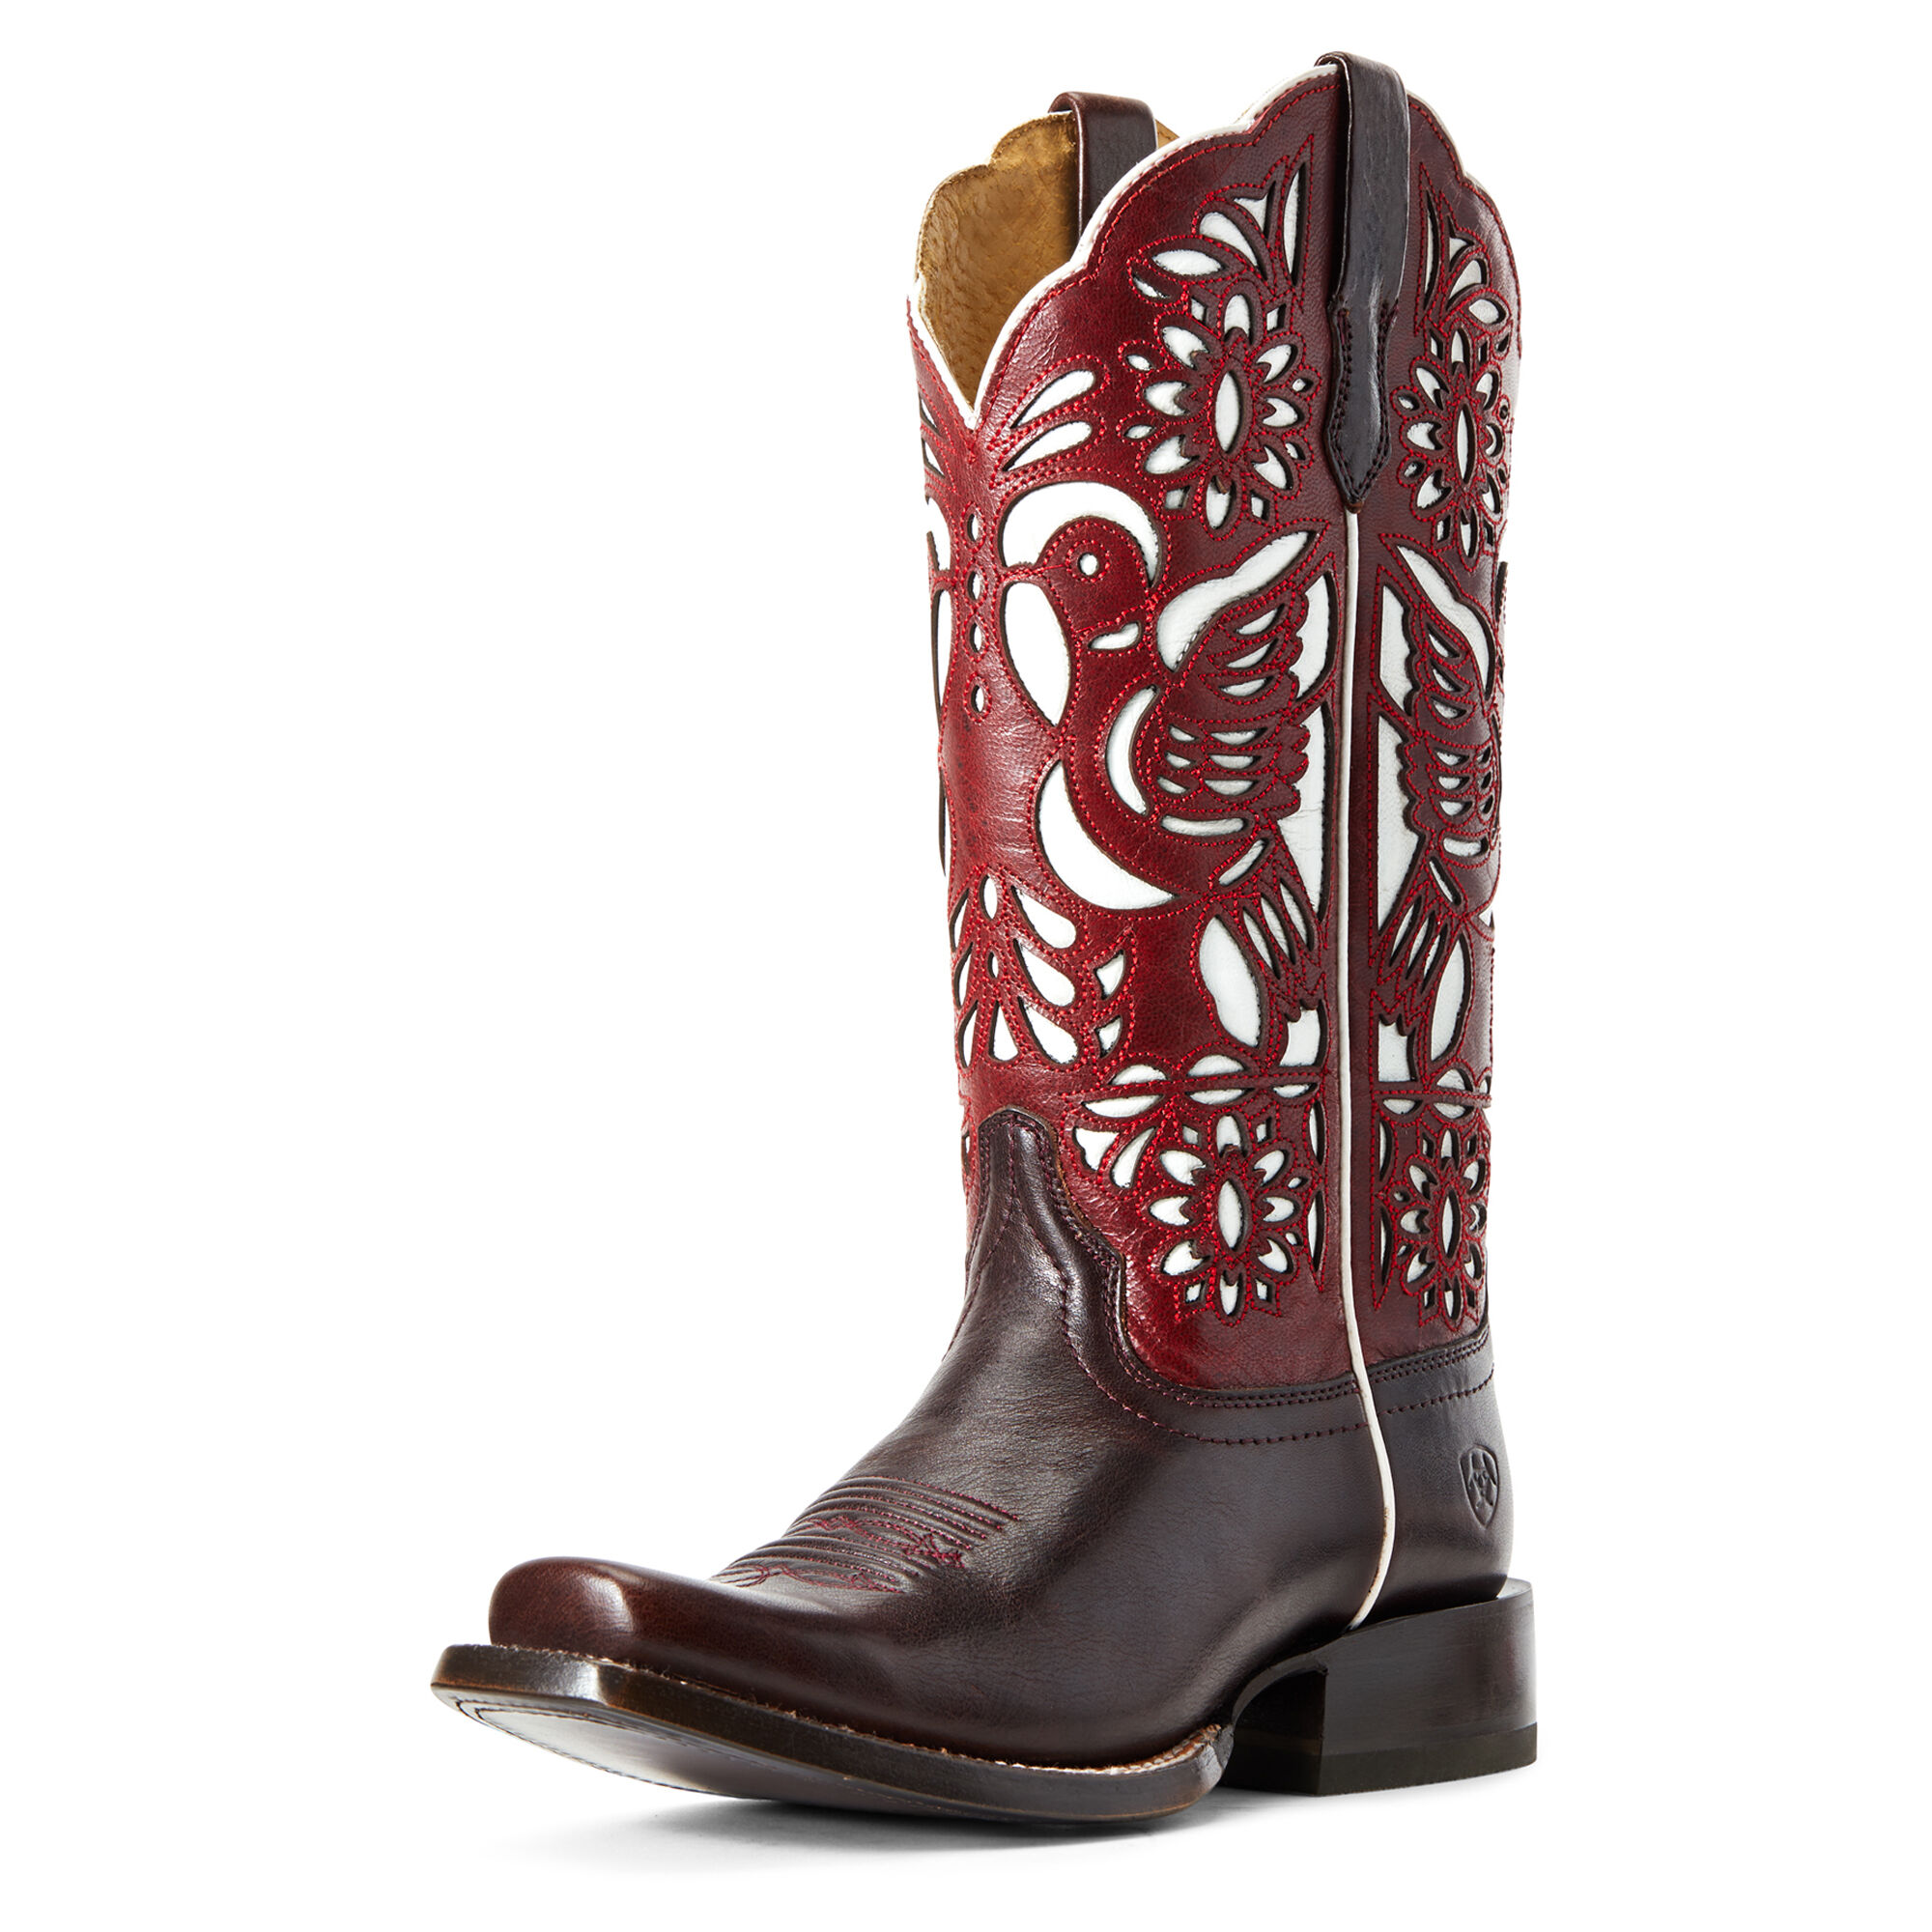 Women's Dorinda Western Boots in Deep Mahogany by Ariat